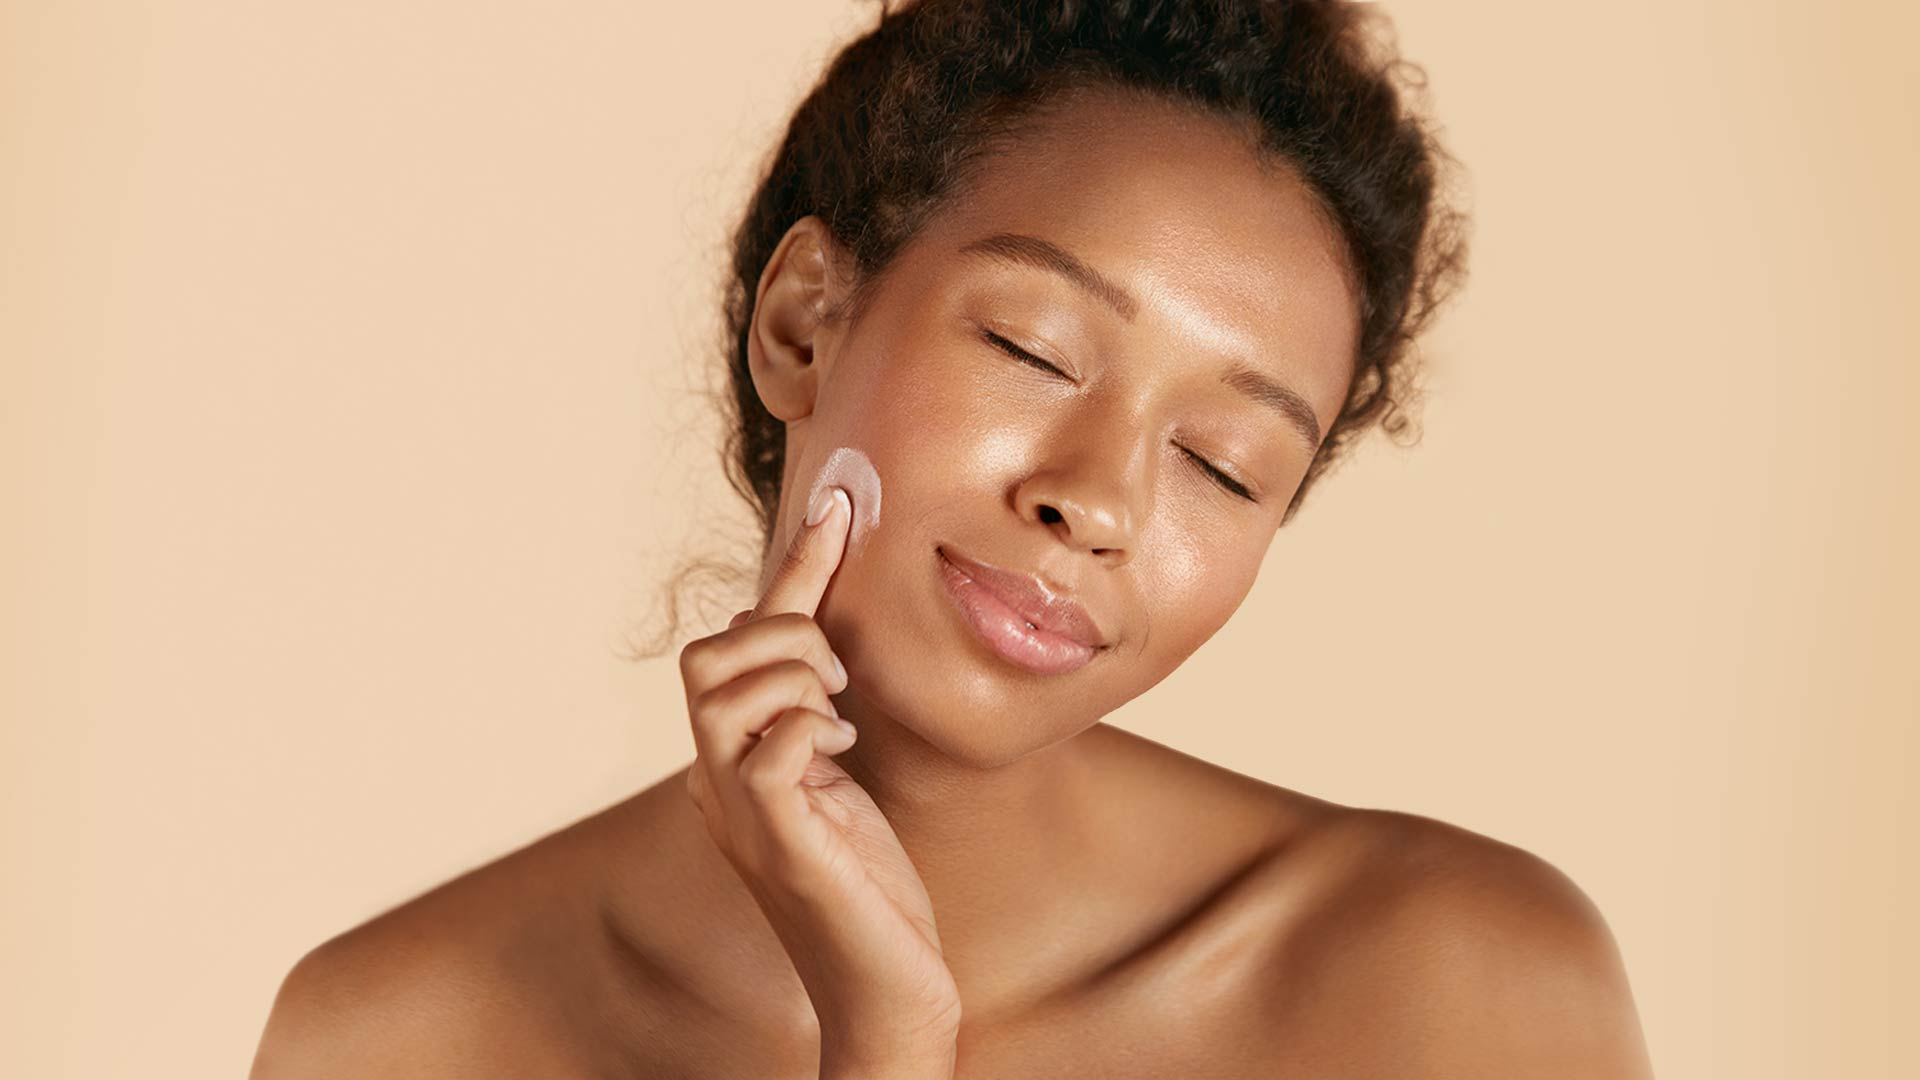 Woman applying moisturizer to her face